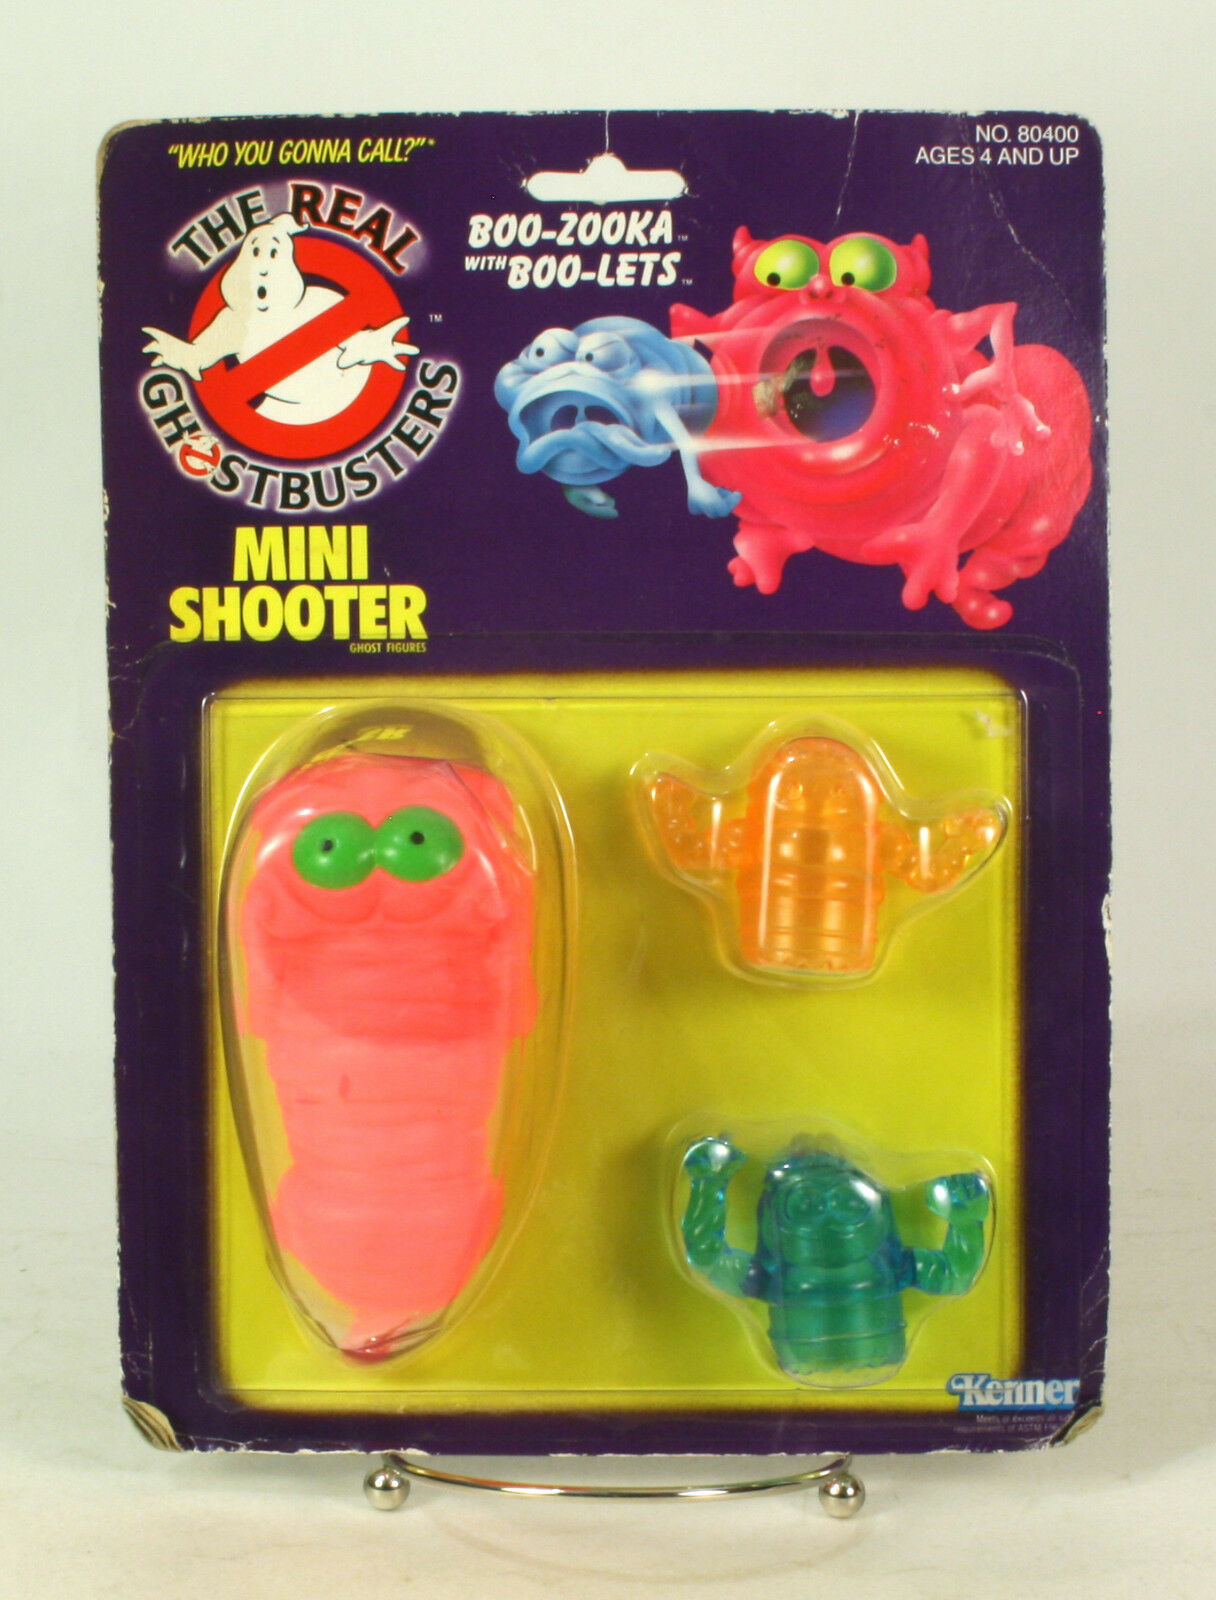 The real ghostbusters - shooter buh zooka mit buh - moc 1986 kenner